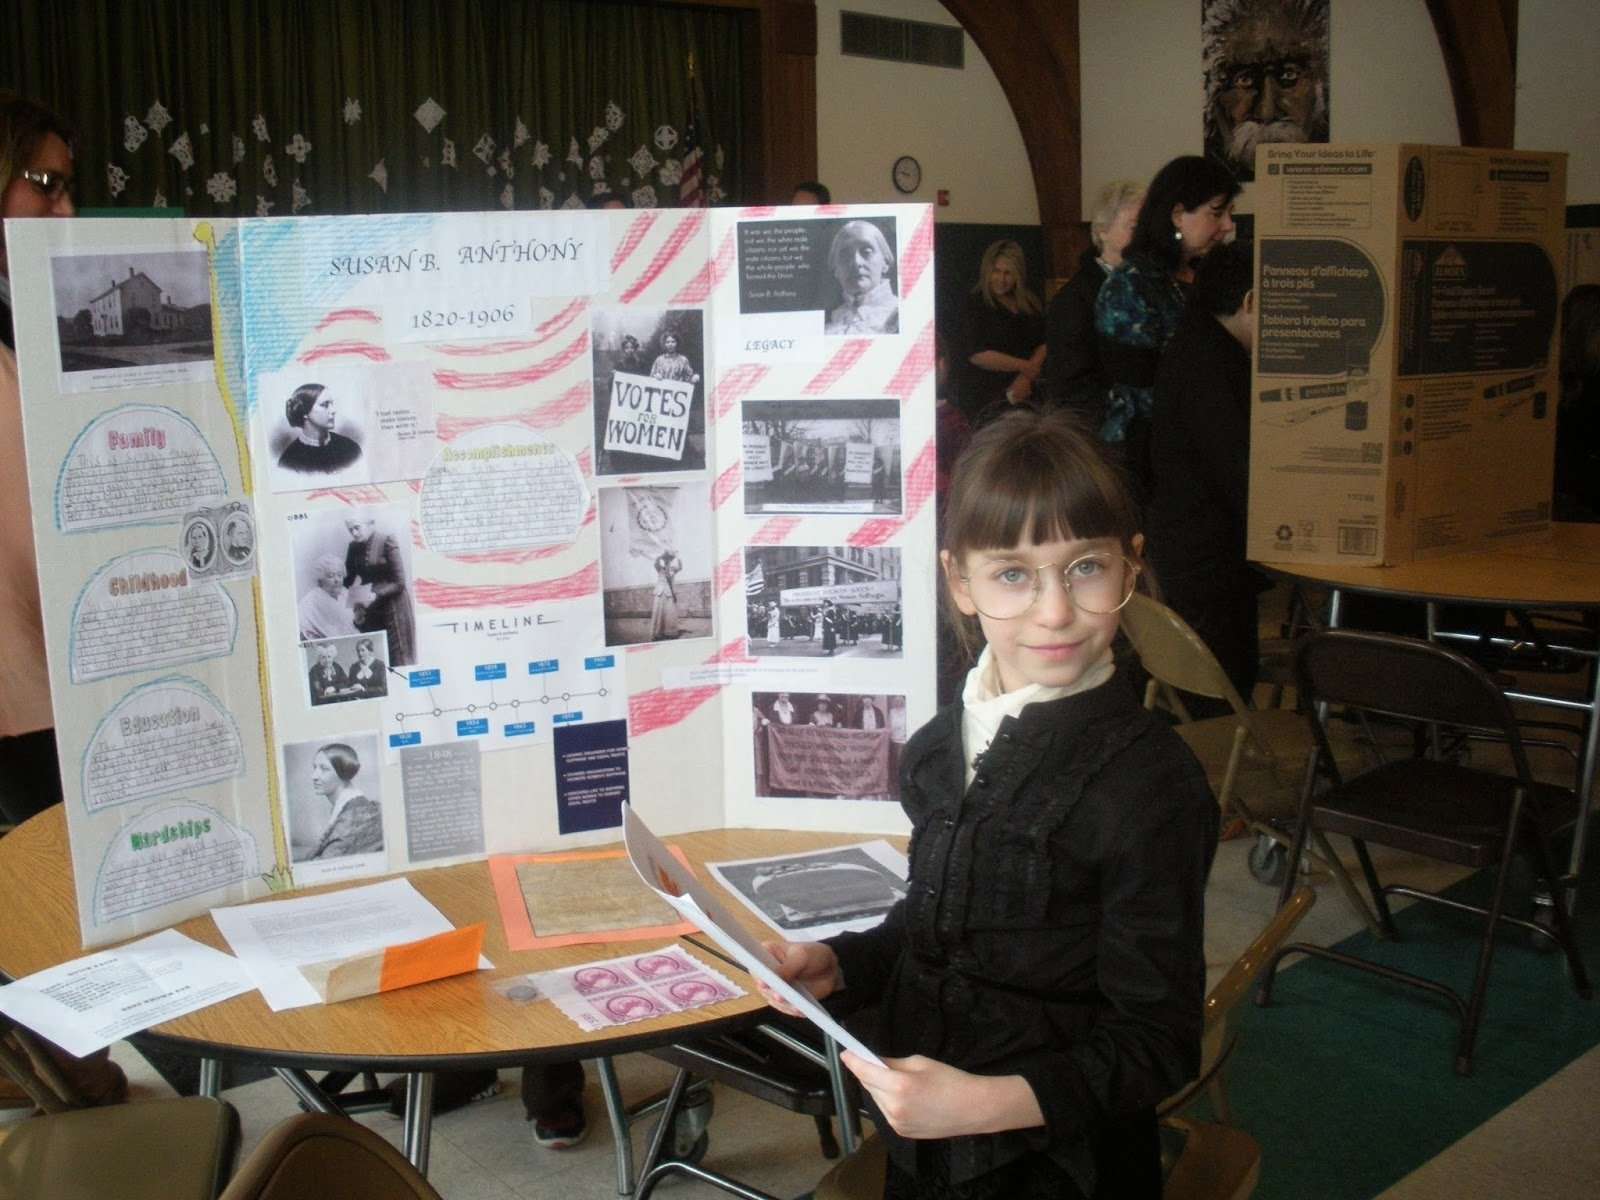 10 Great Susan B Anthony Costume Ideas room 205 march 2014 2020